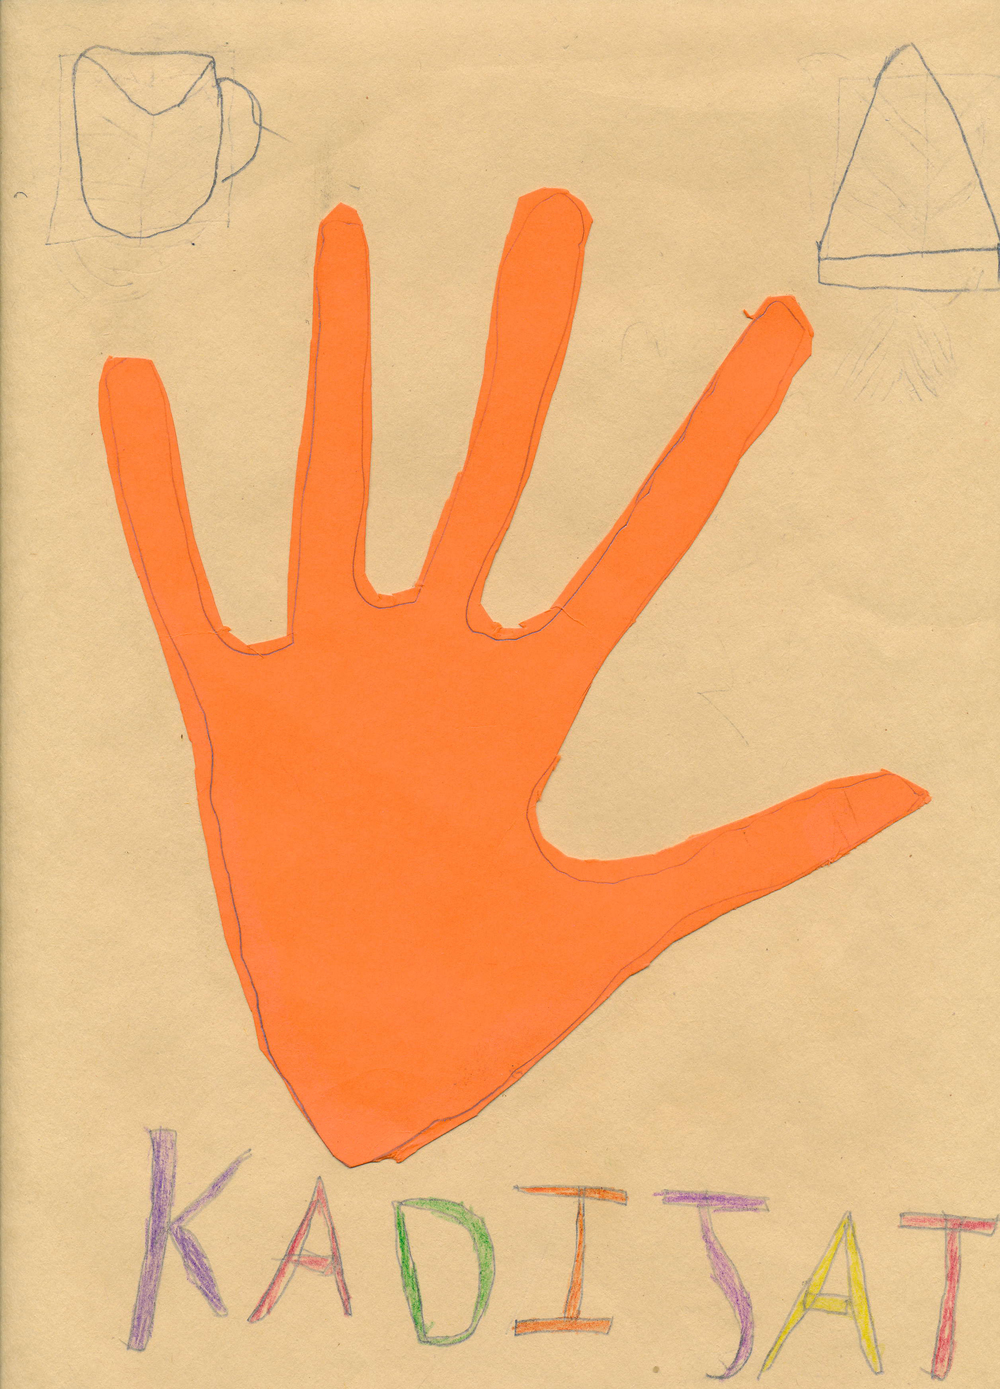 care africa child sponsorship kadijat hand print.jpg